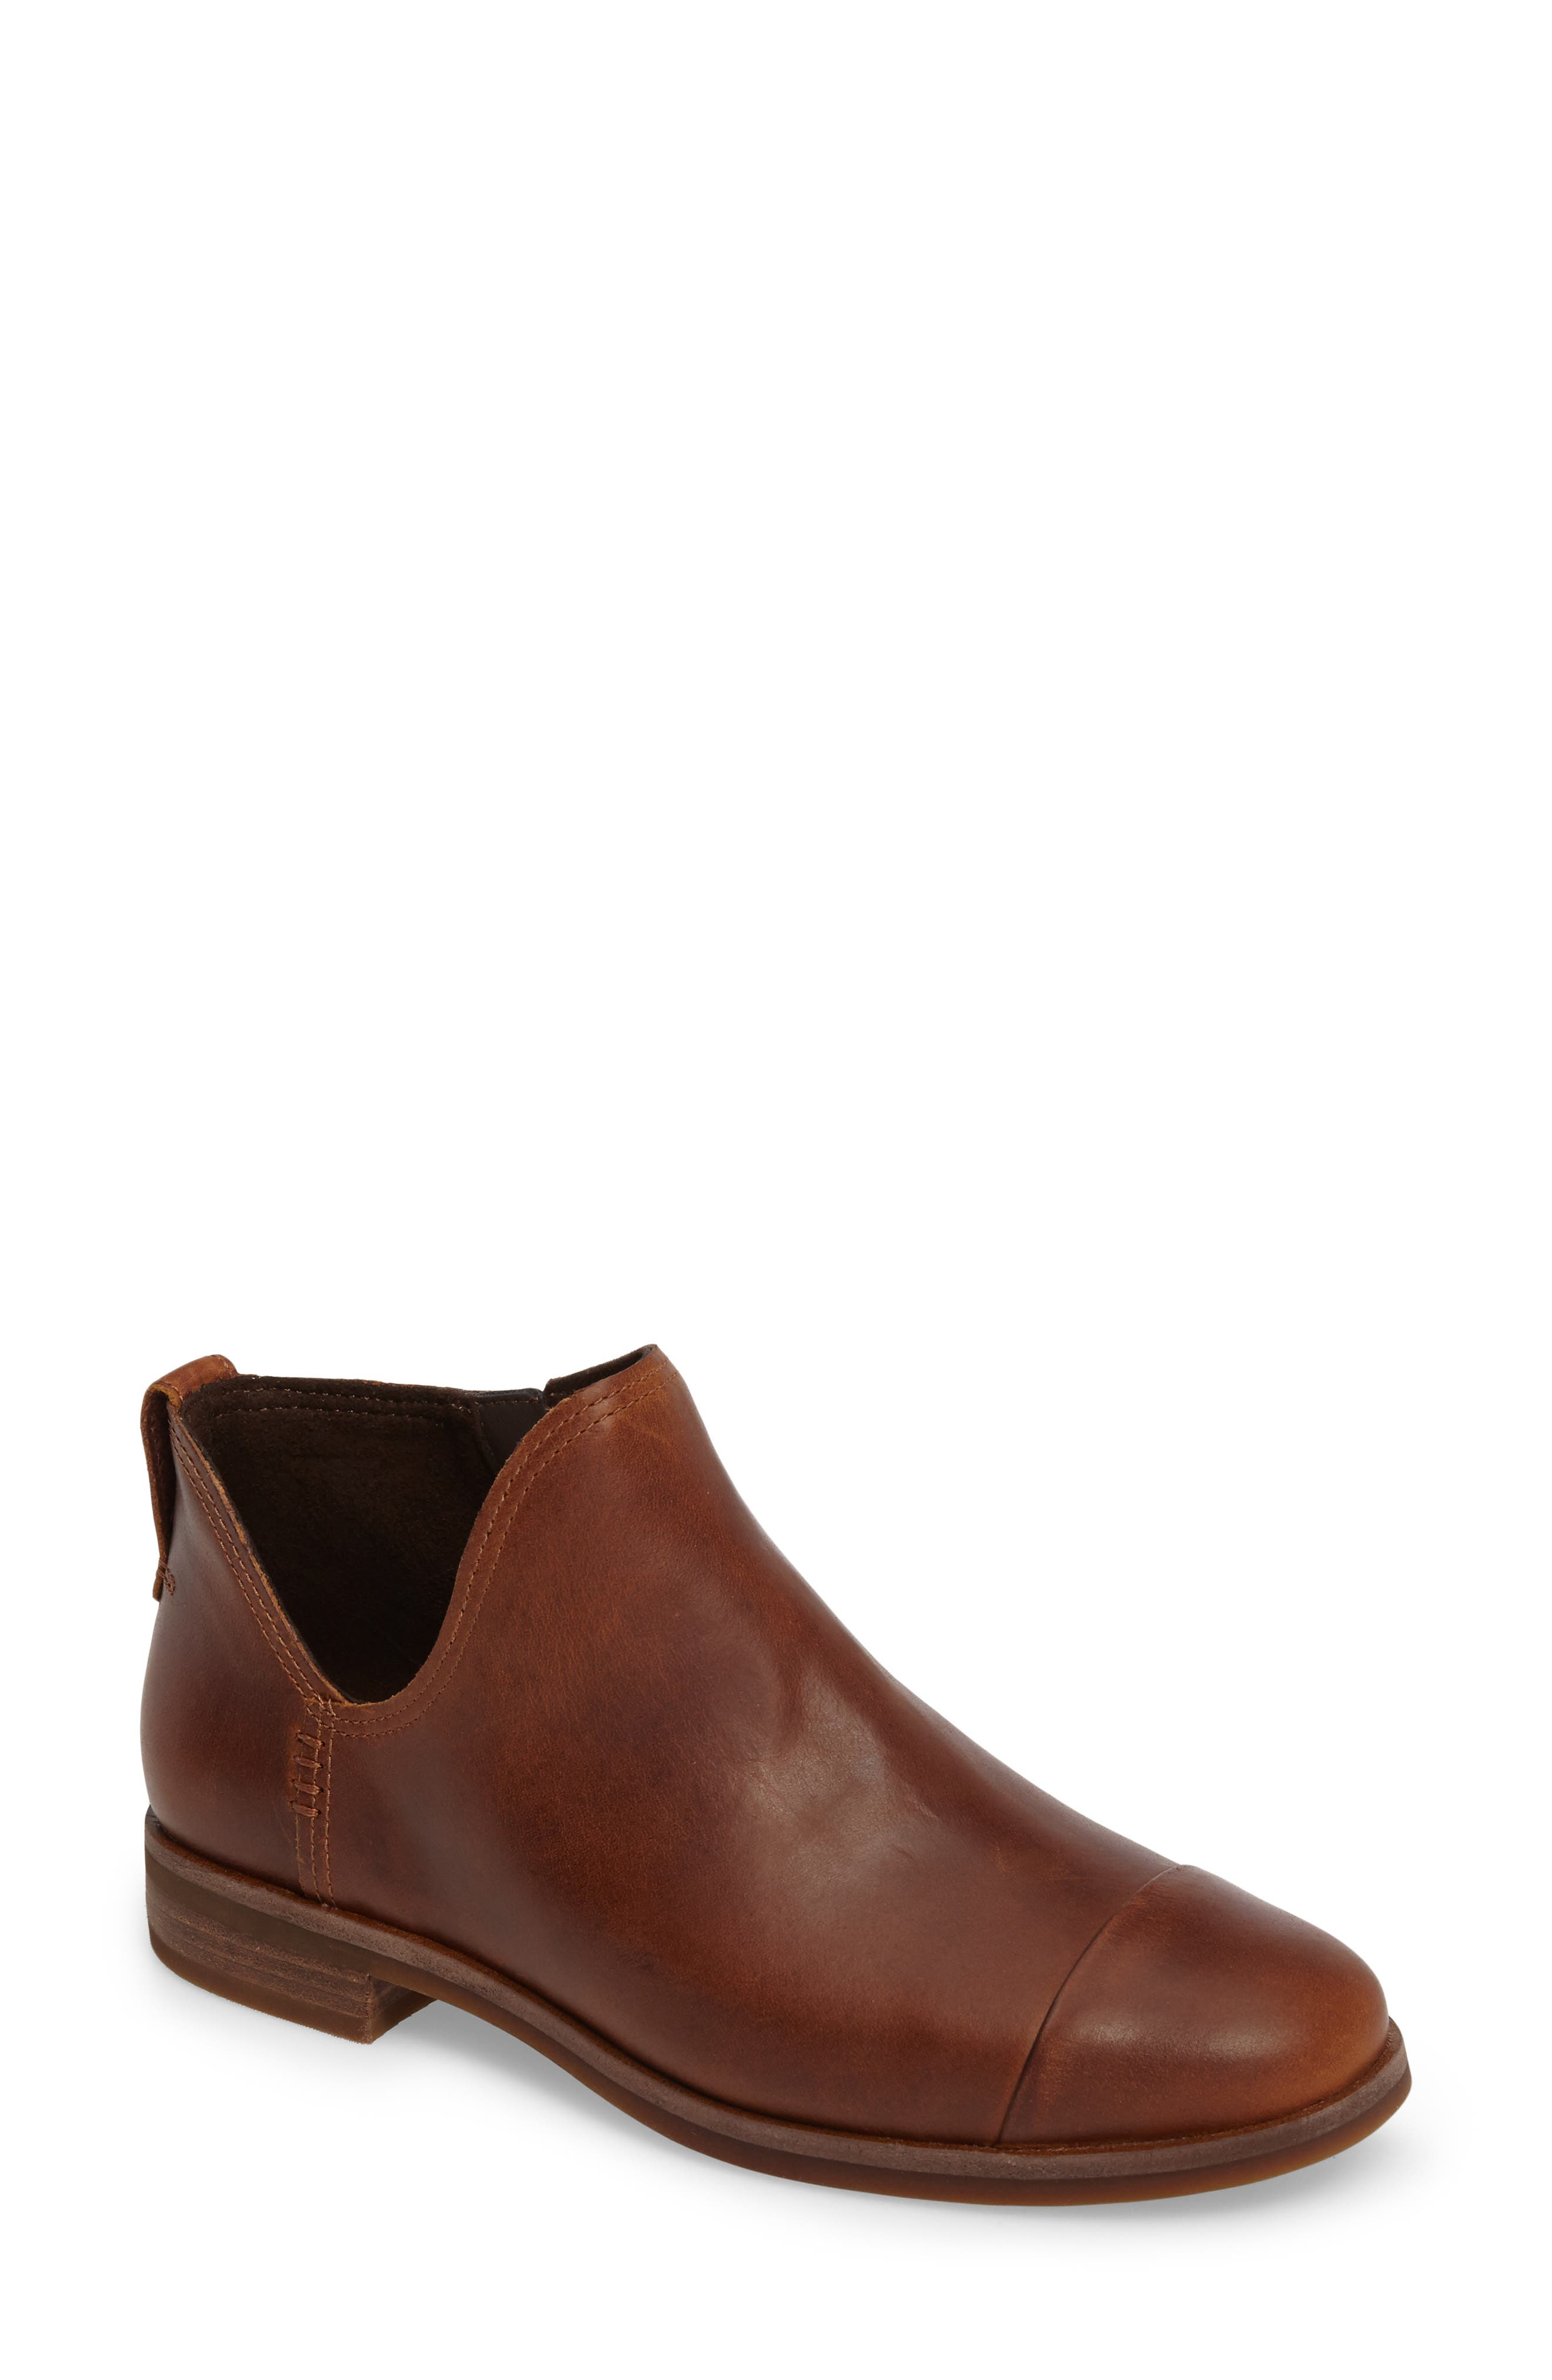 Alternate Image 1 Selected - Timberland Somers Falls Short Ankle Bootie (Women)